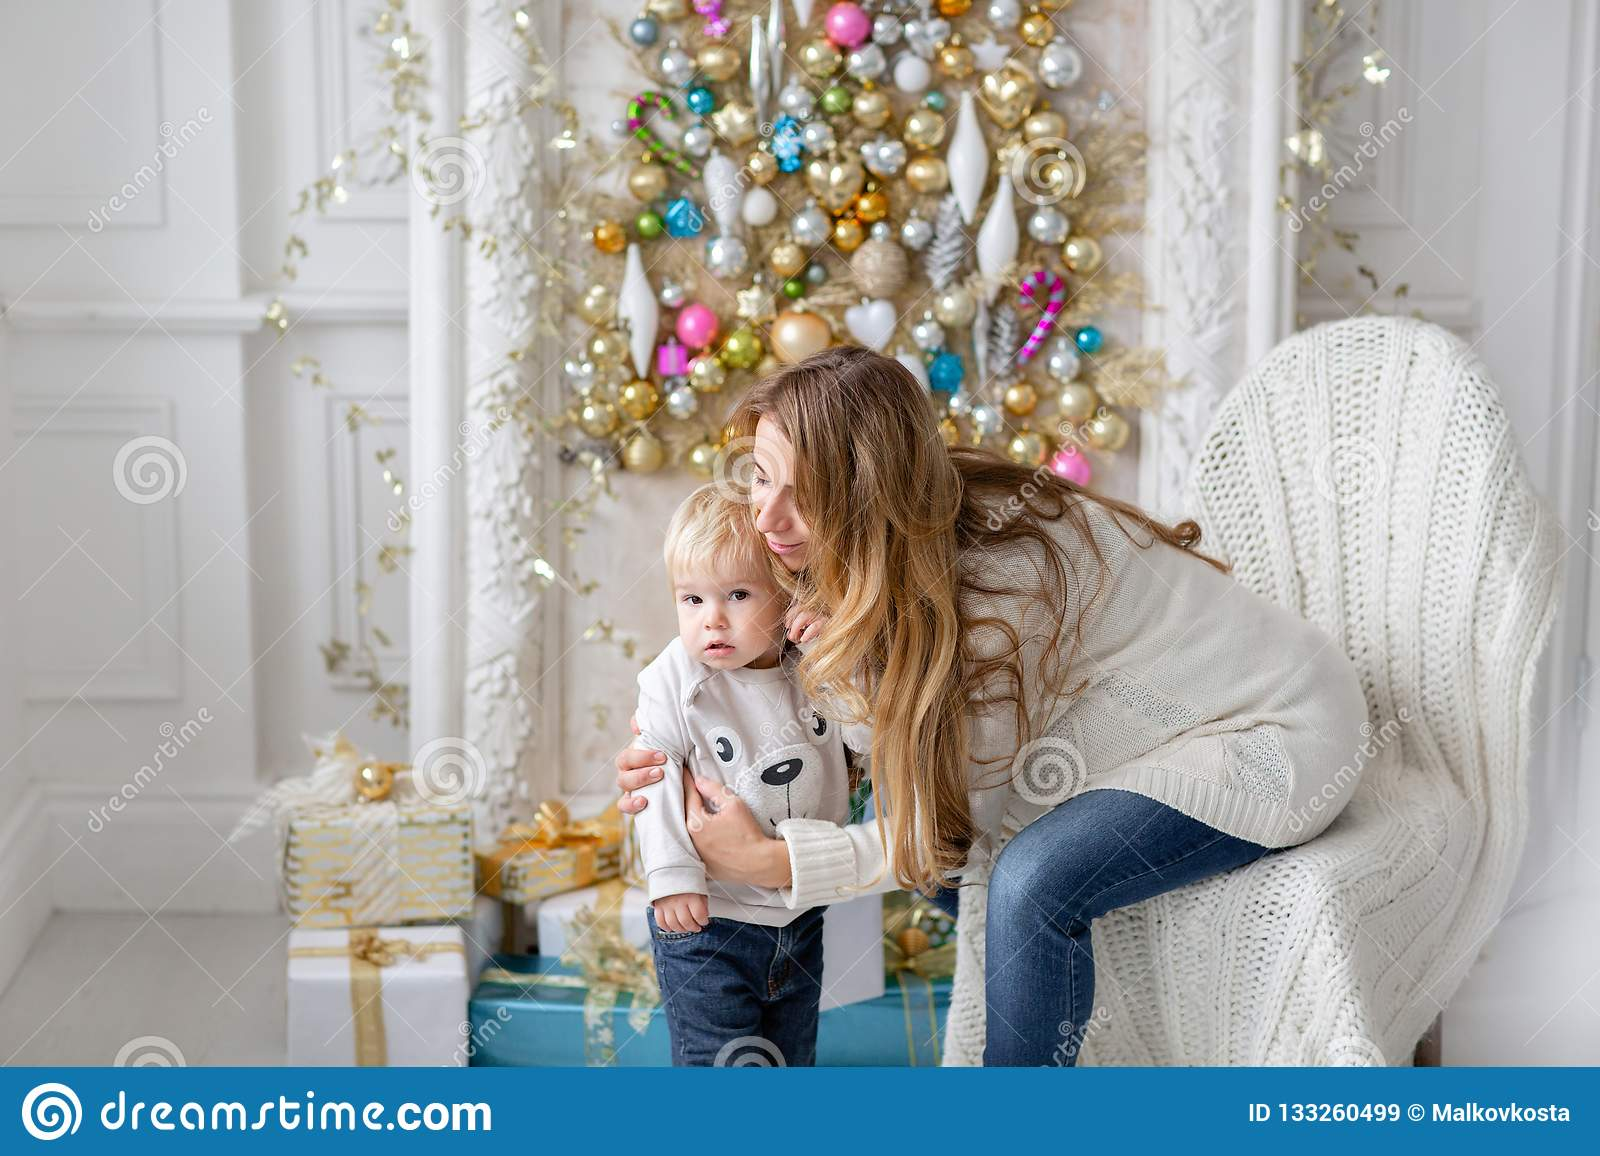 Mom plays with child. Happy family Portrait In Home - young pregnant mother embraces his little son. Happy new year